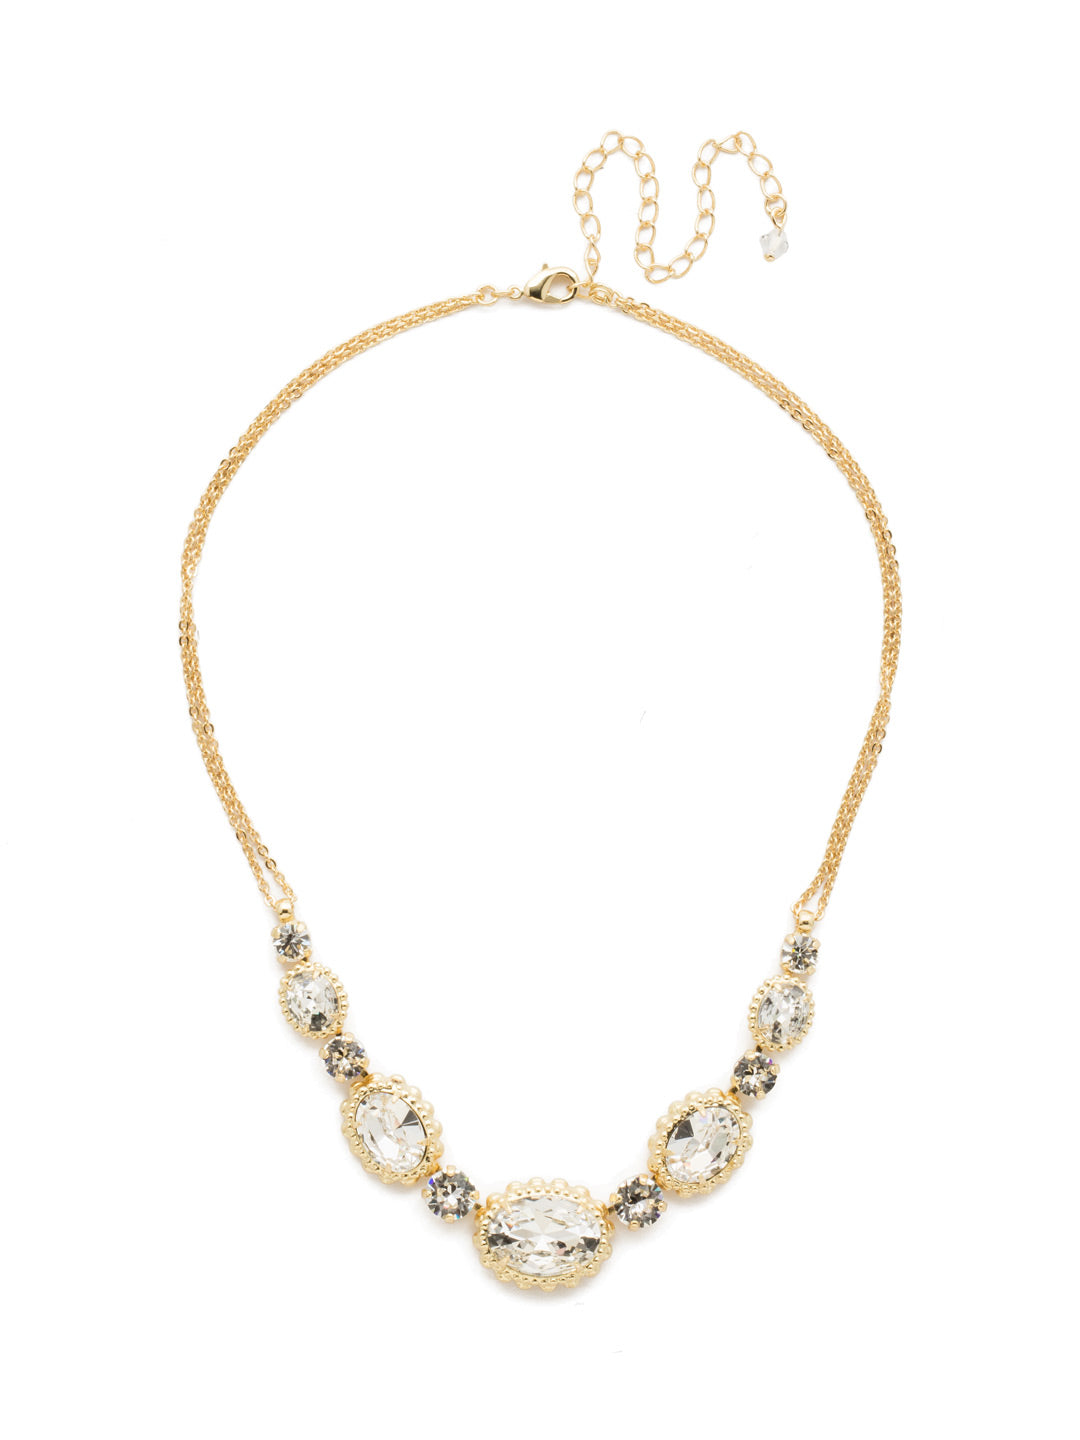 Camellia Necklace - NDQ10BGCRY